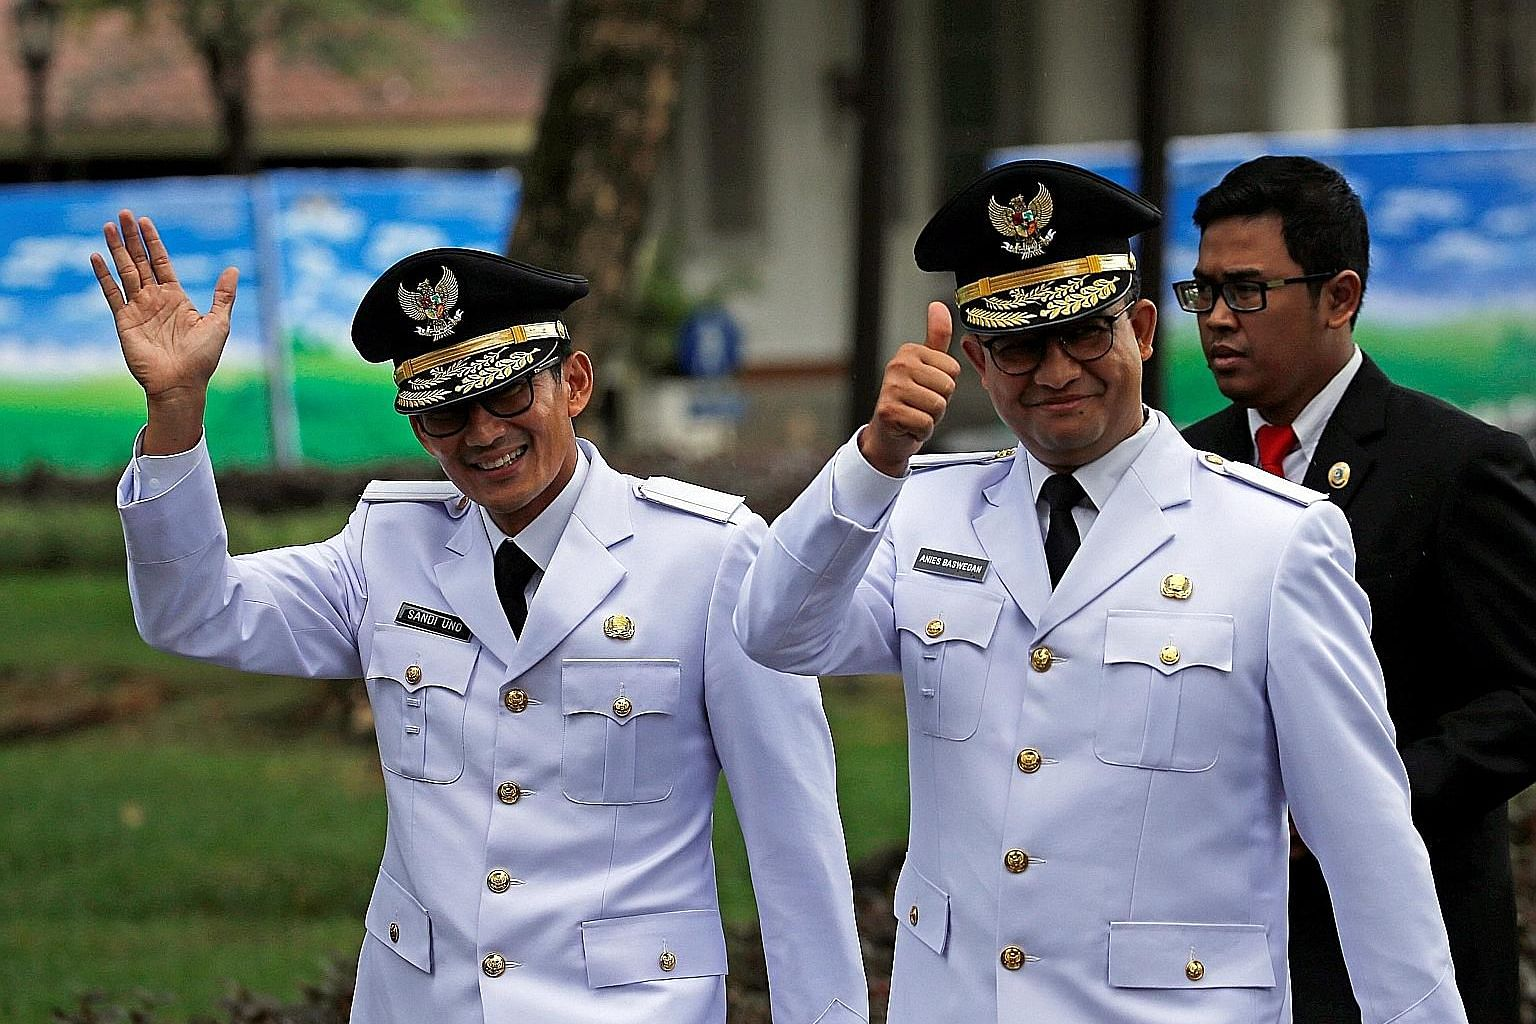 Jakarta Governor Anies Baswedan (far right) and his deputy Sandiaga Uno greeting the media before being sworn in at the Presidential Palace in Jakarta yesterday.